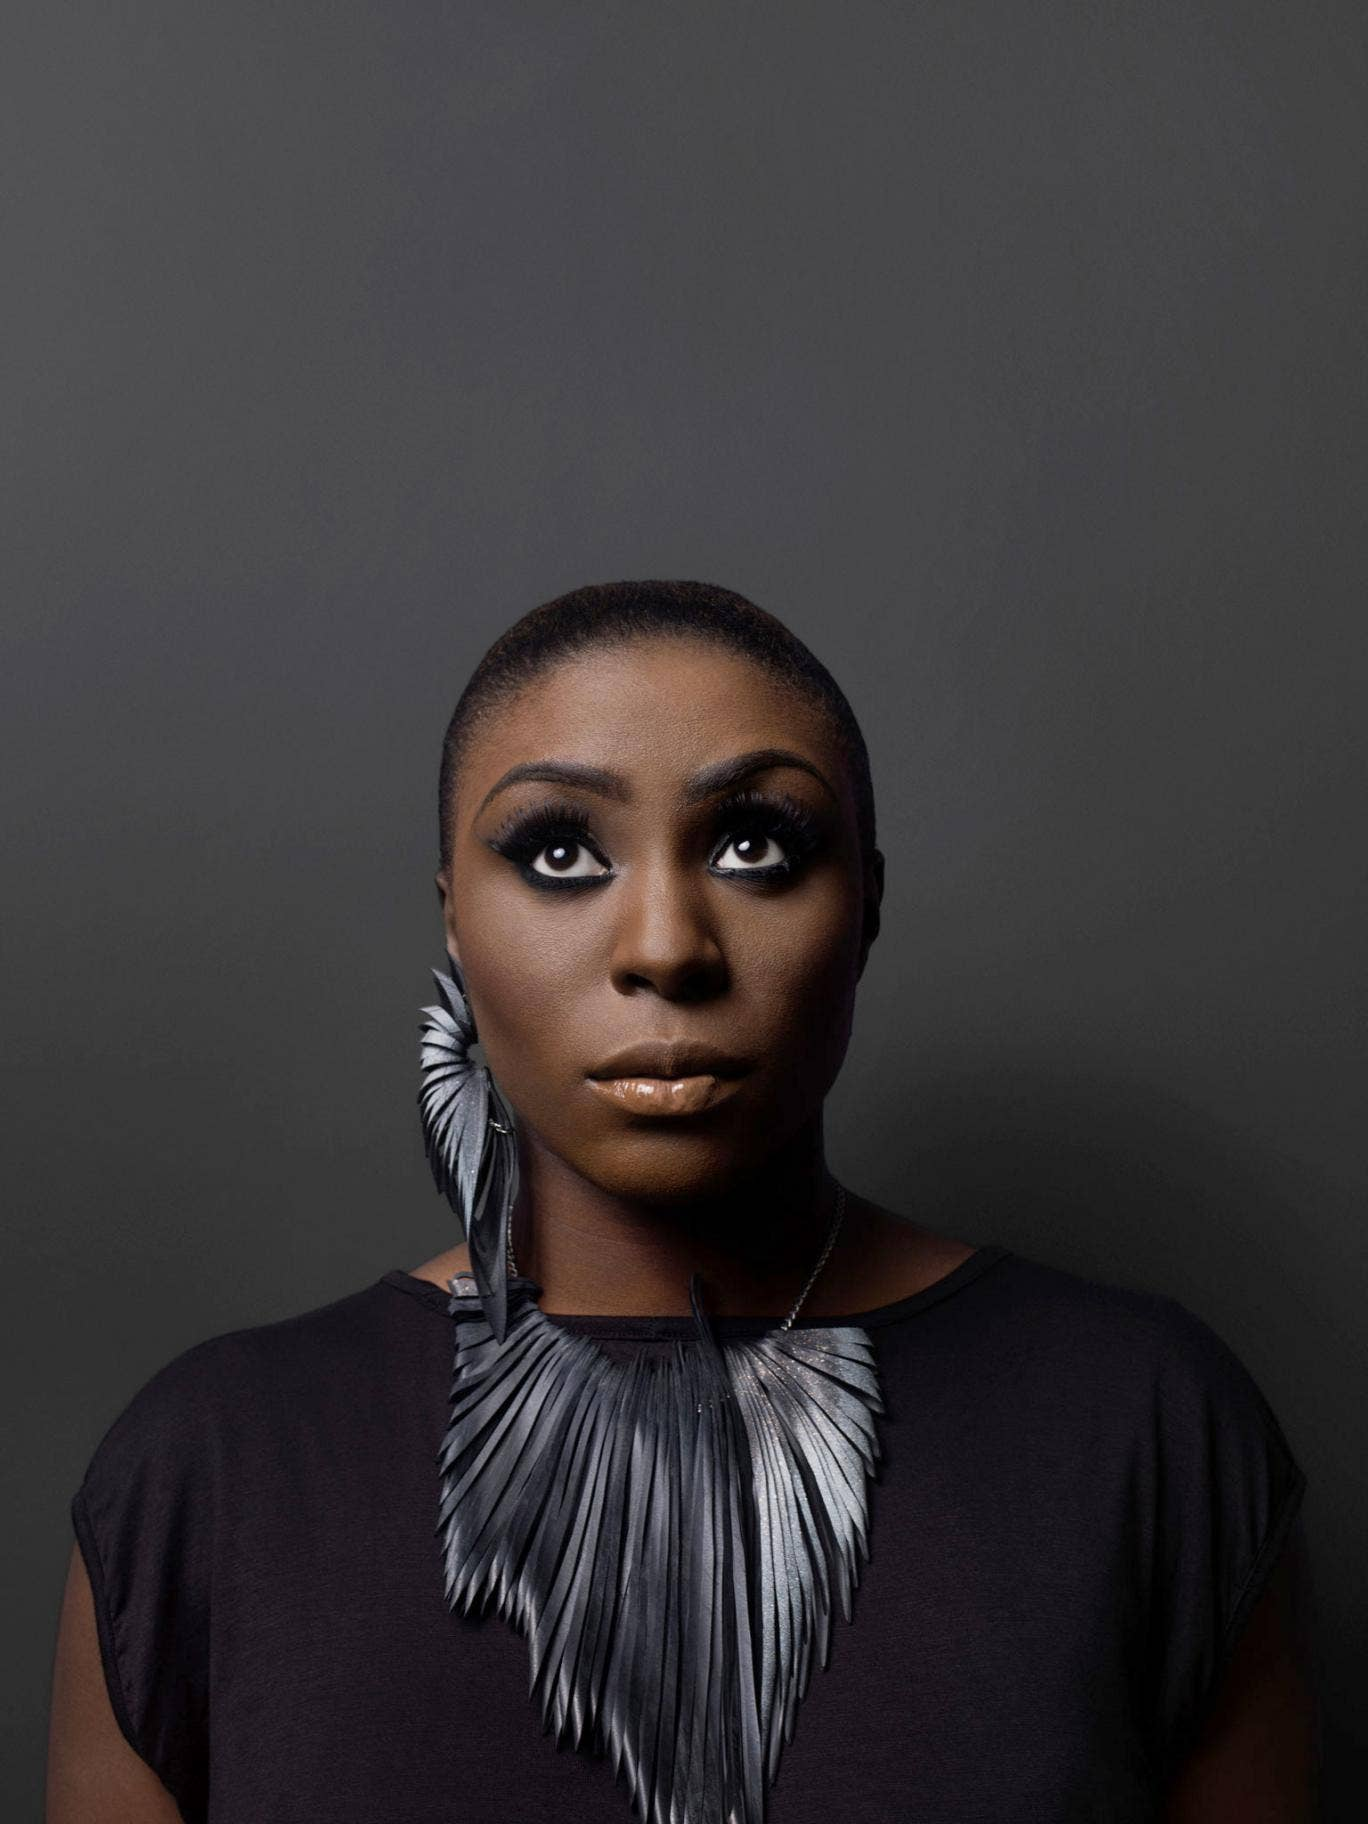 For many years now, Mvula has suffered with an asphyxiating anxiety